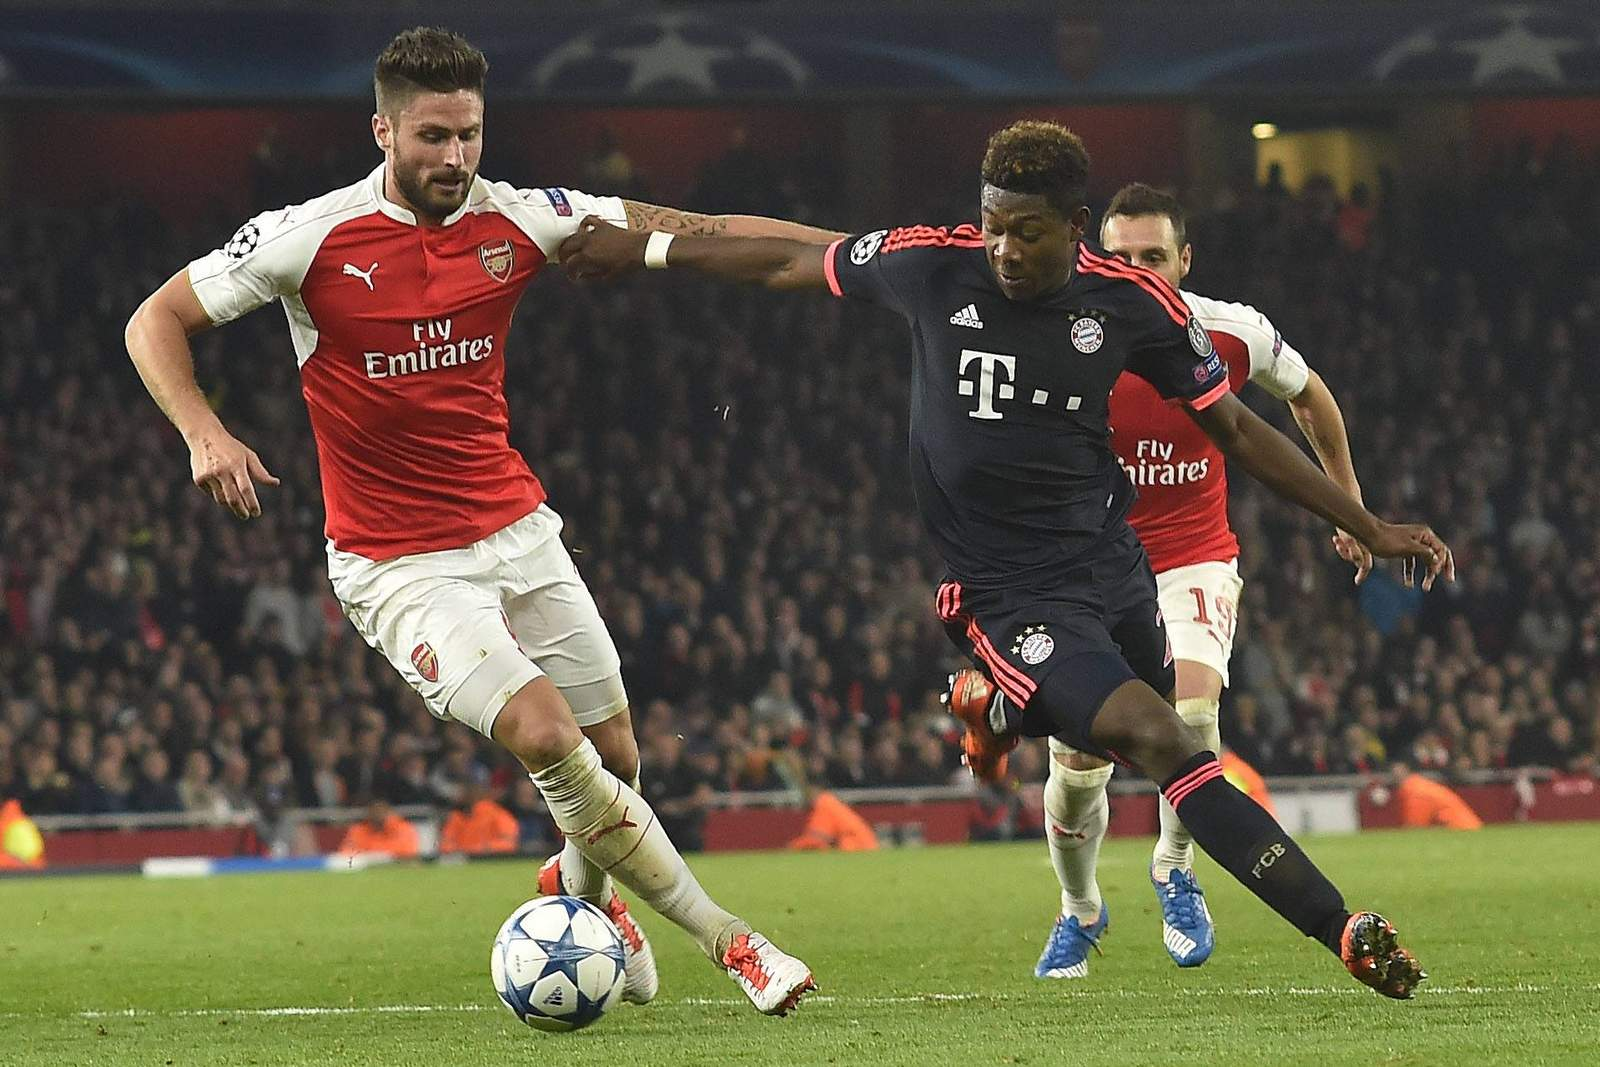 champions league quoten 2017/14